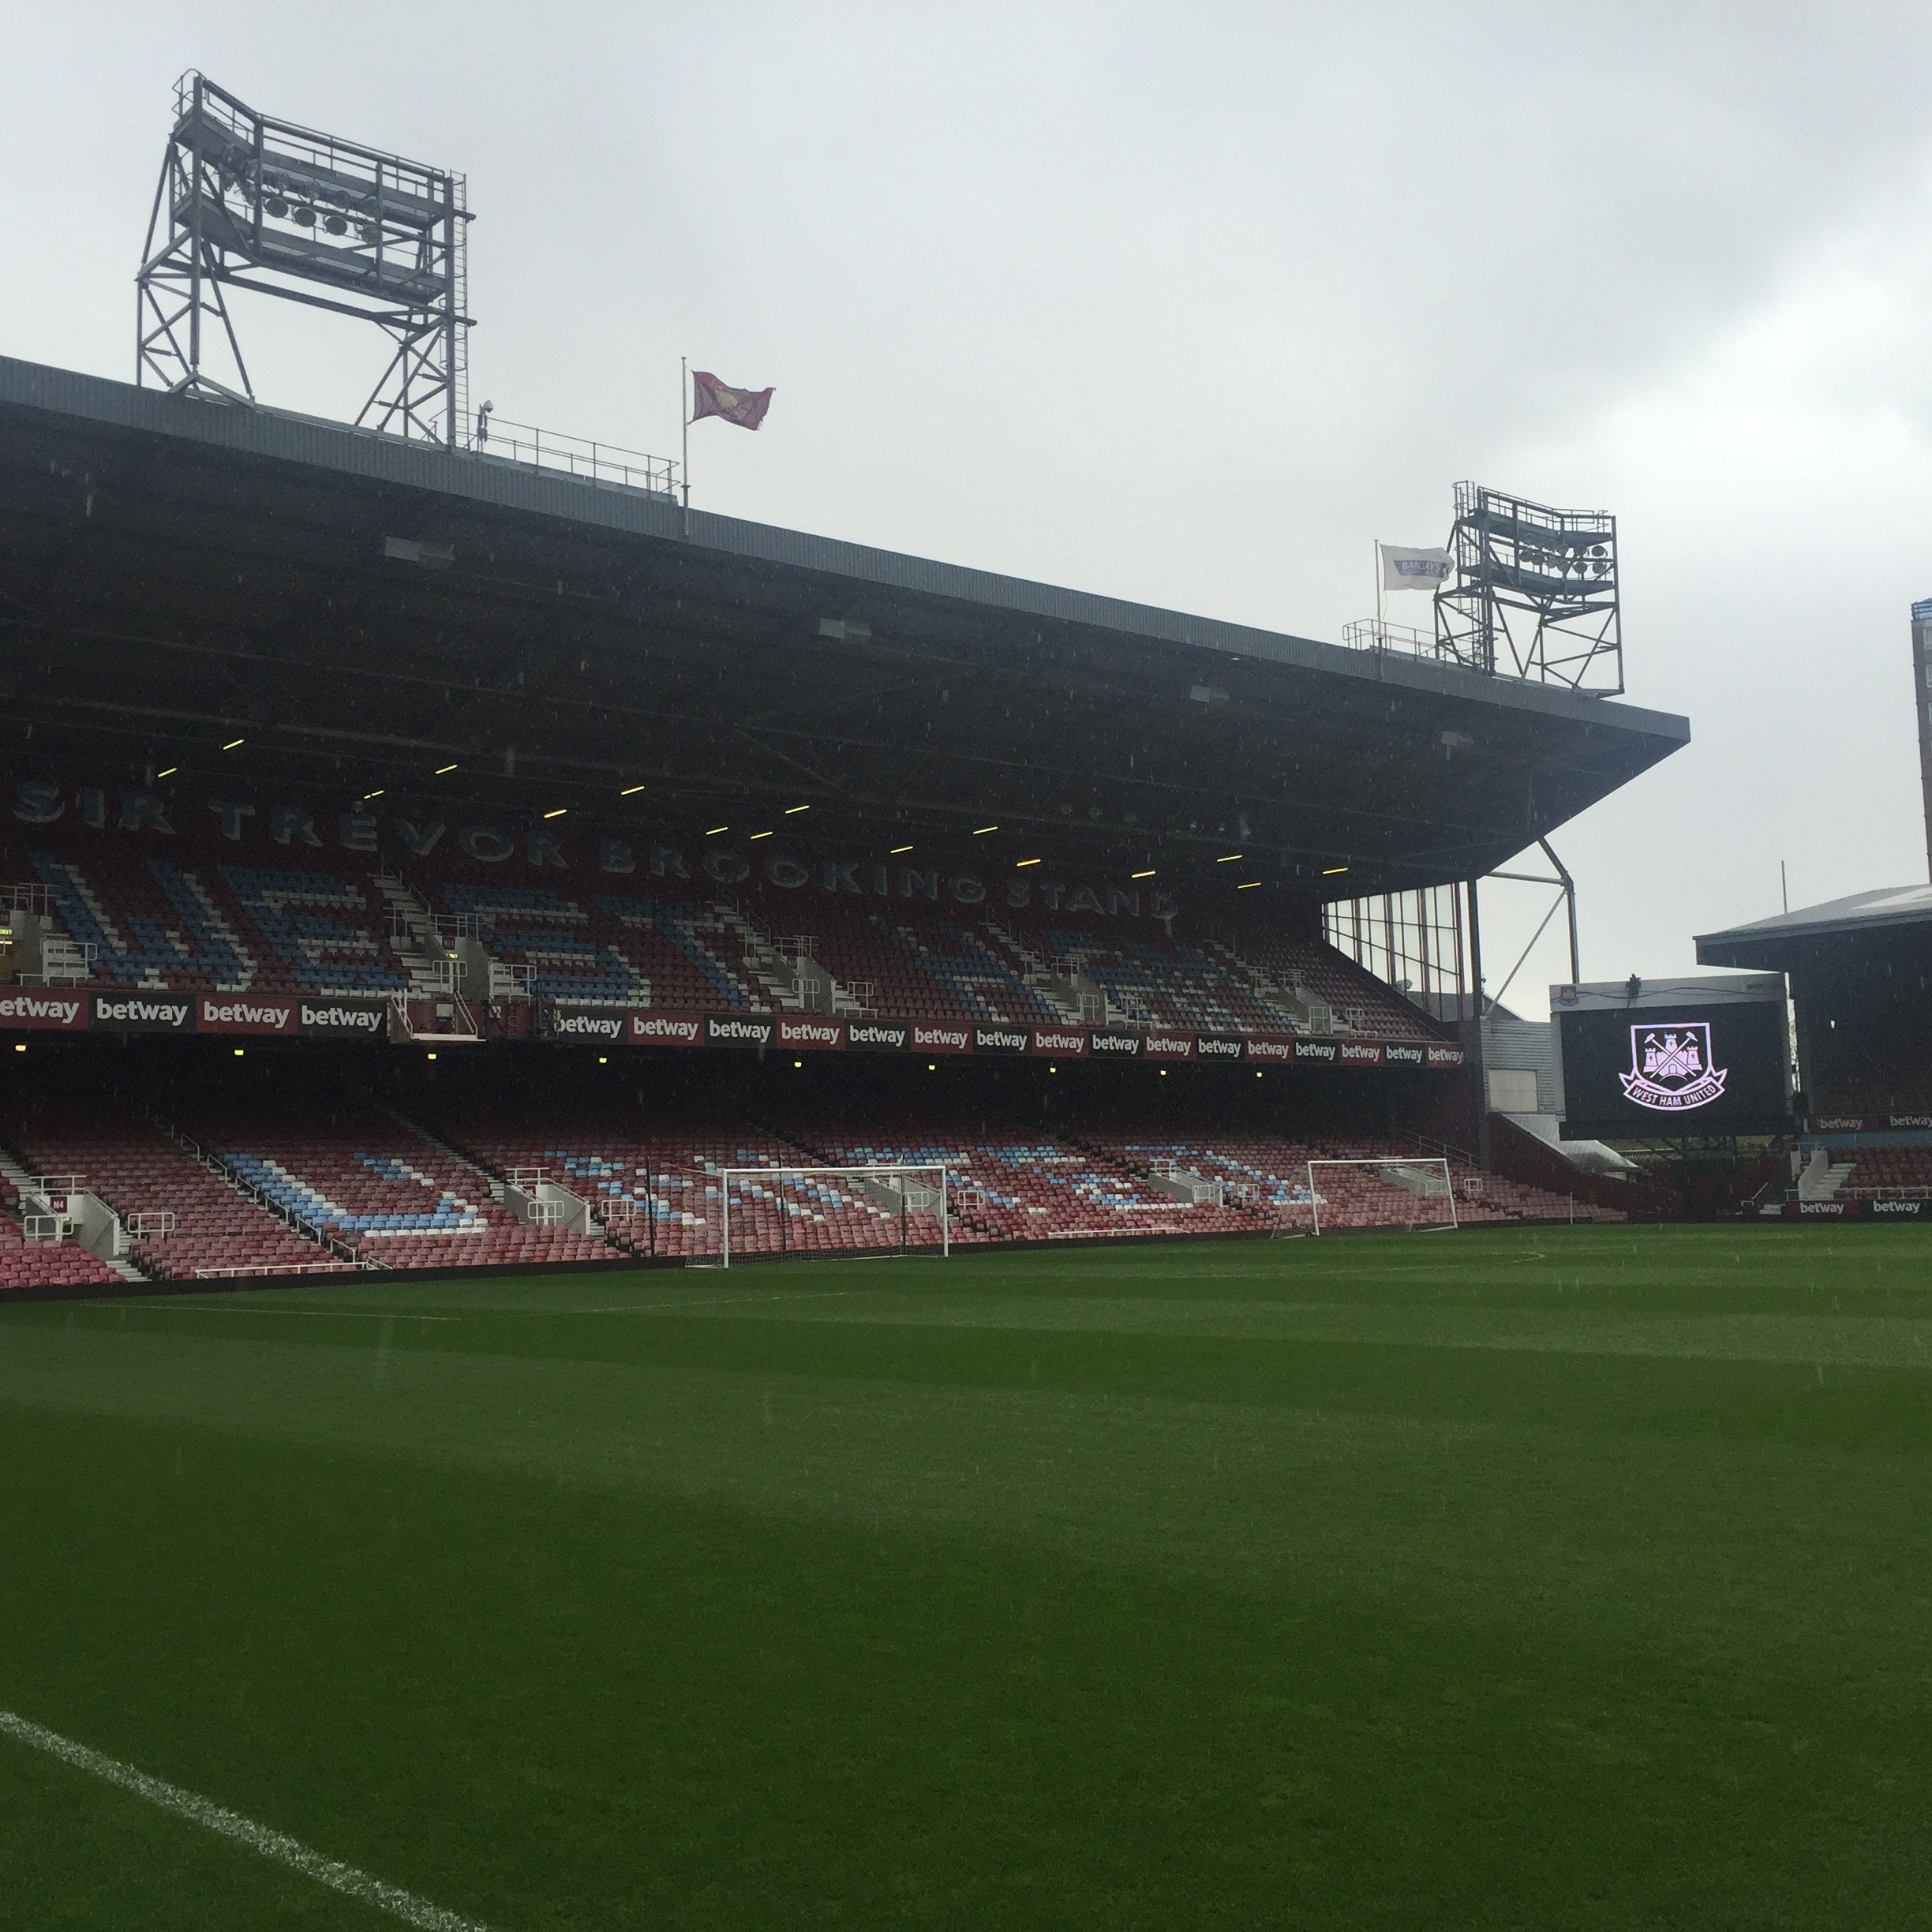 Sir Trevor Brooking Stand